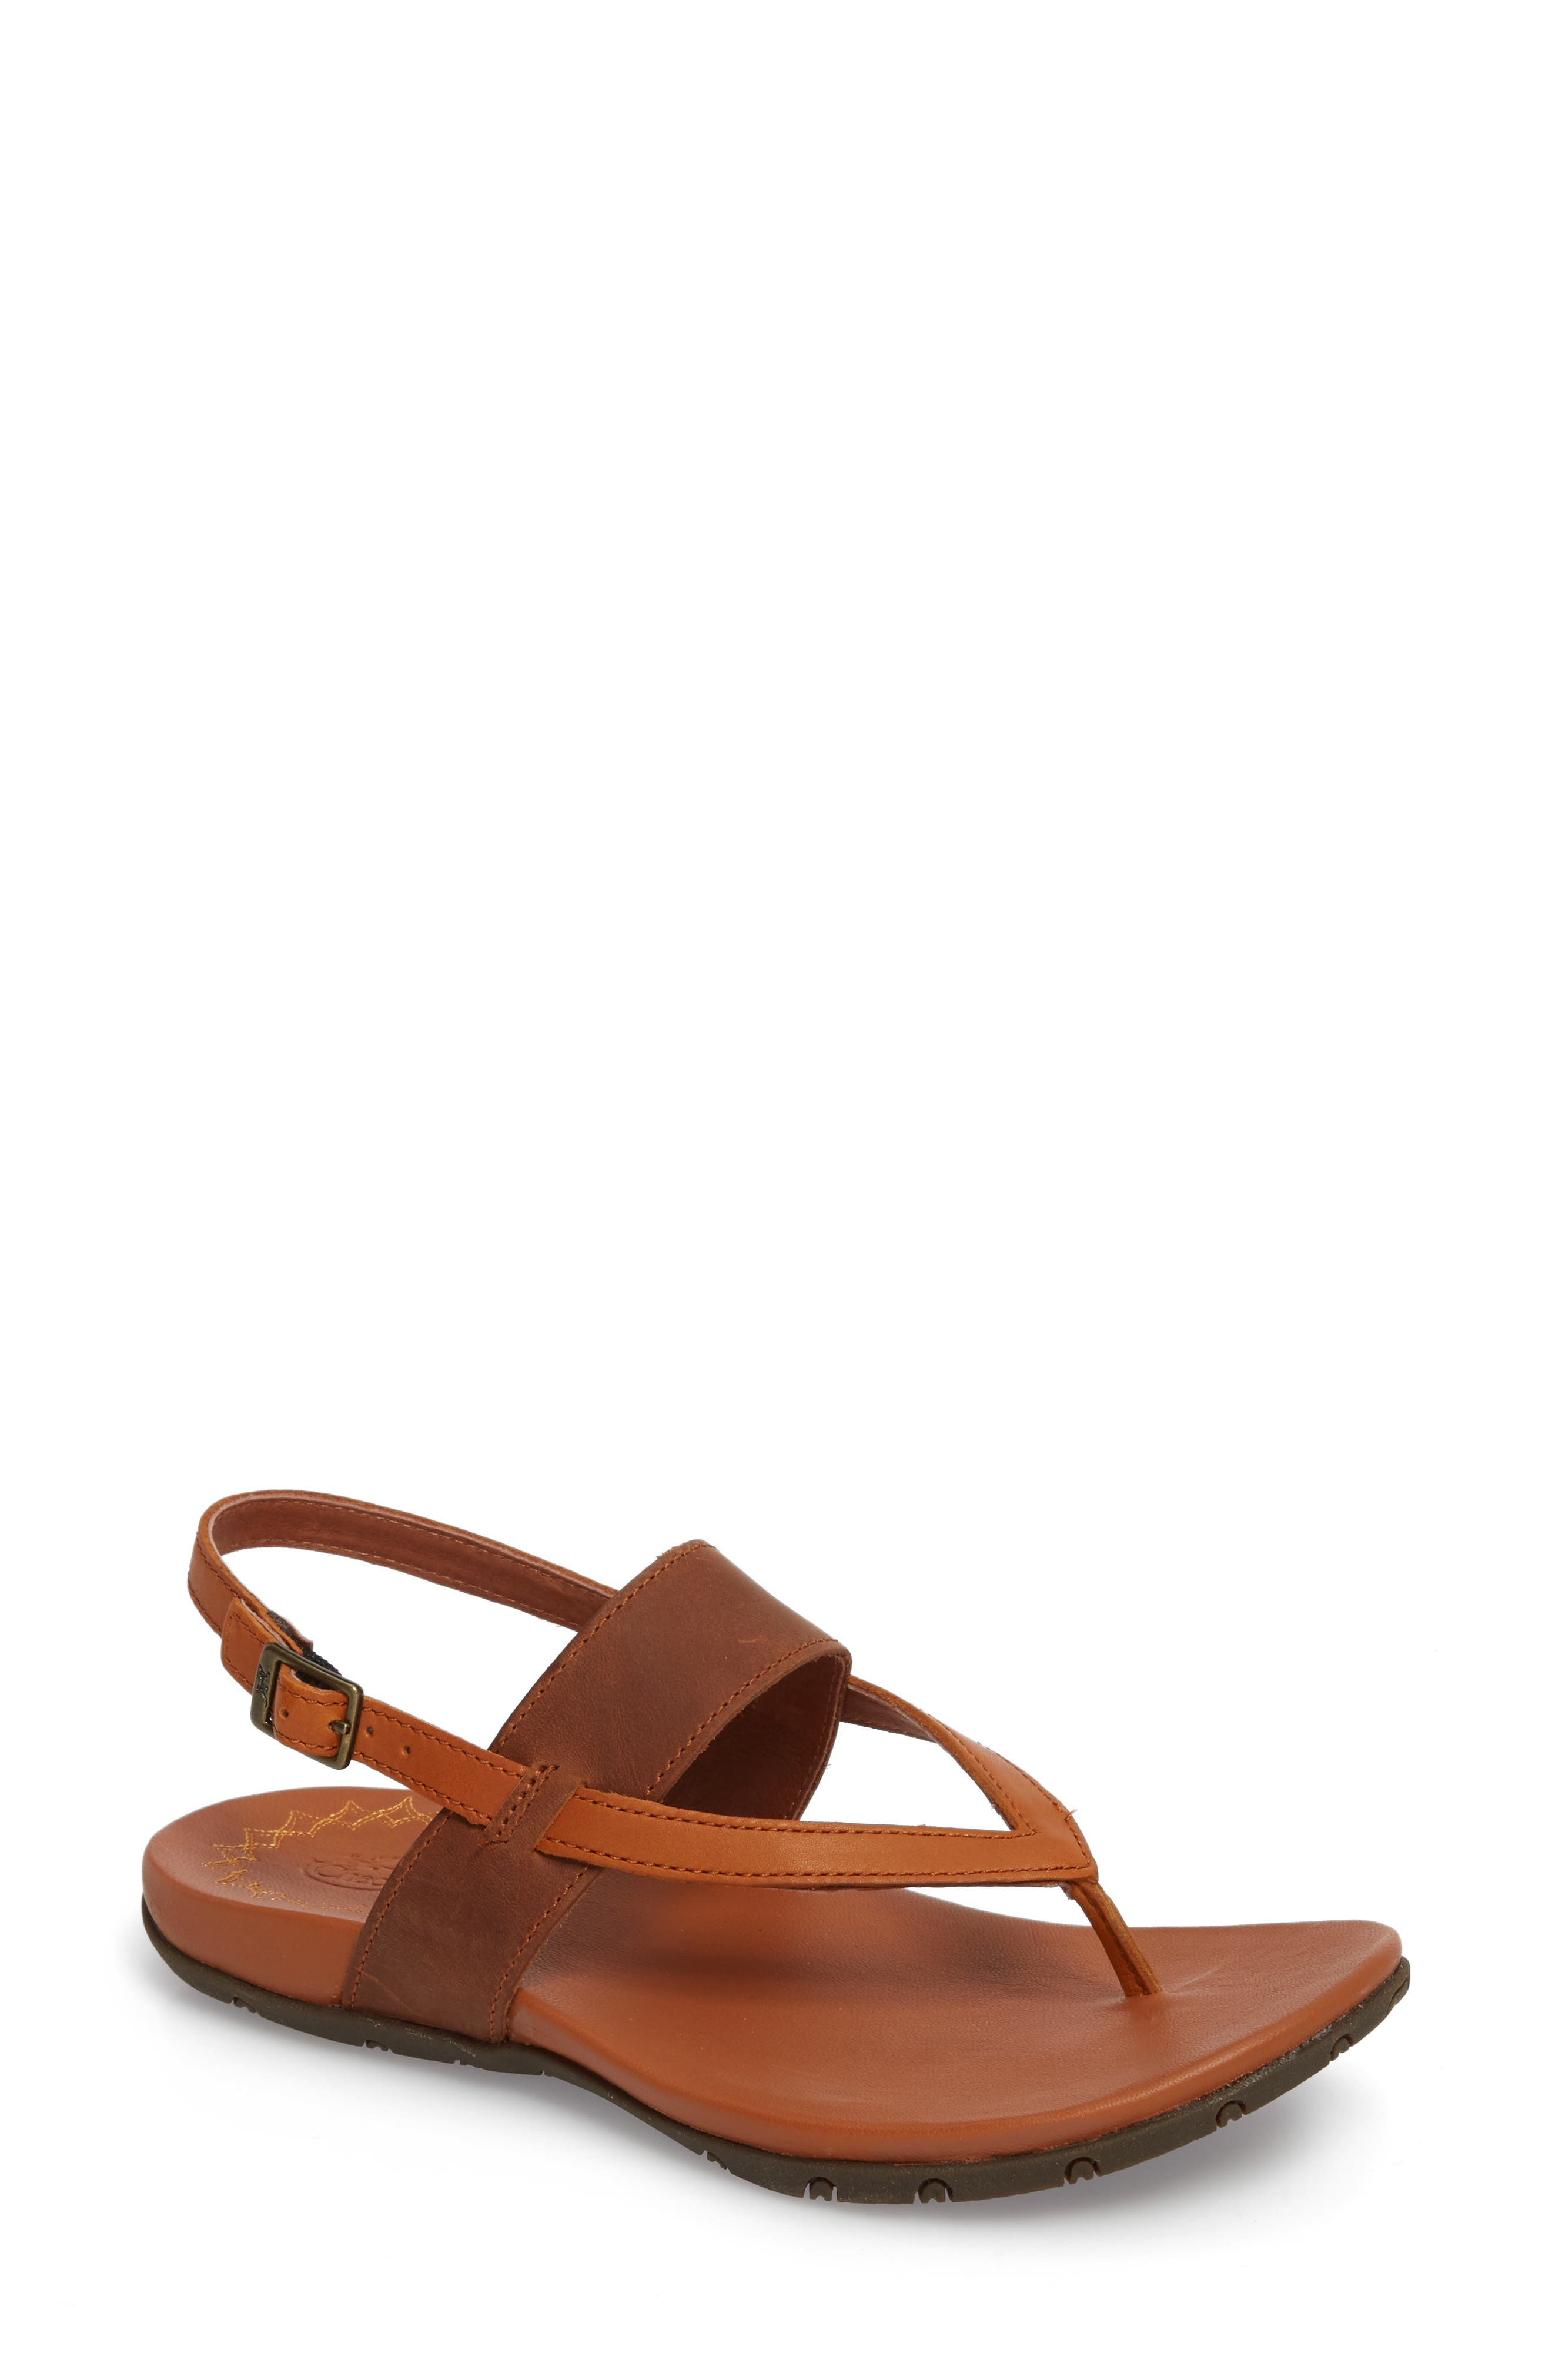 Maya II Sandal,                         Main,                         color, Rust Leather